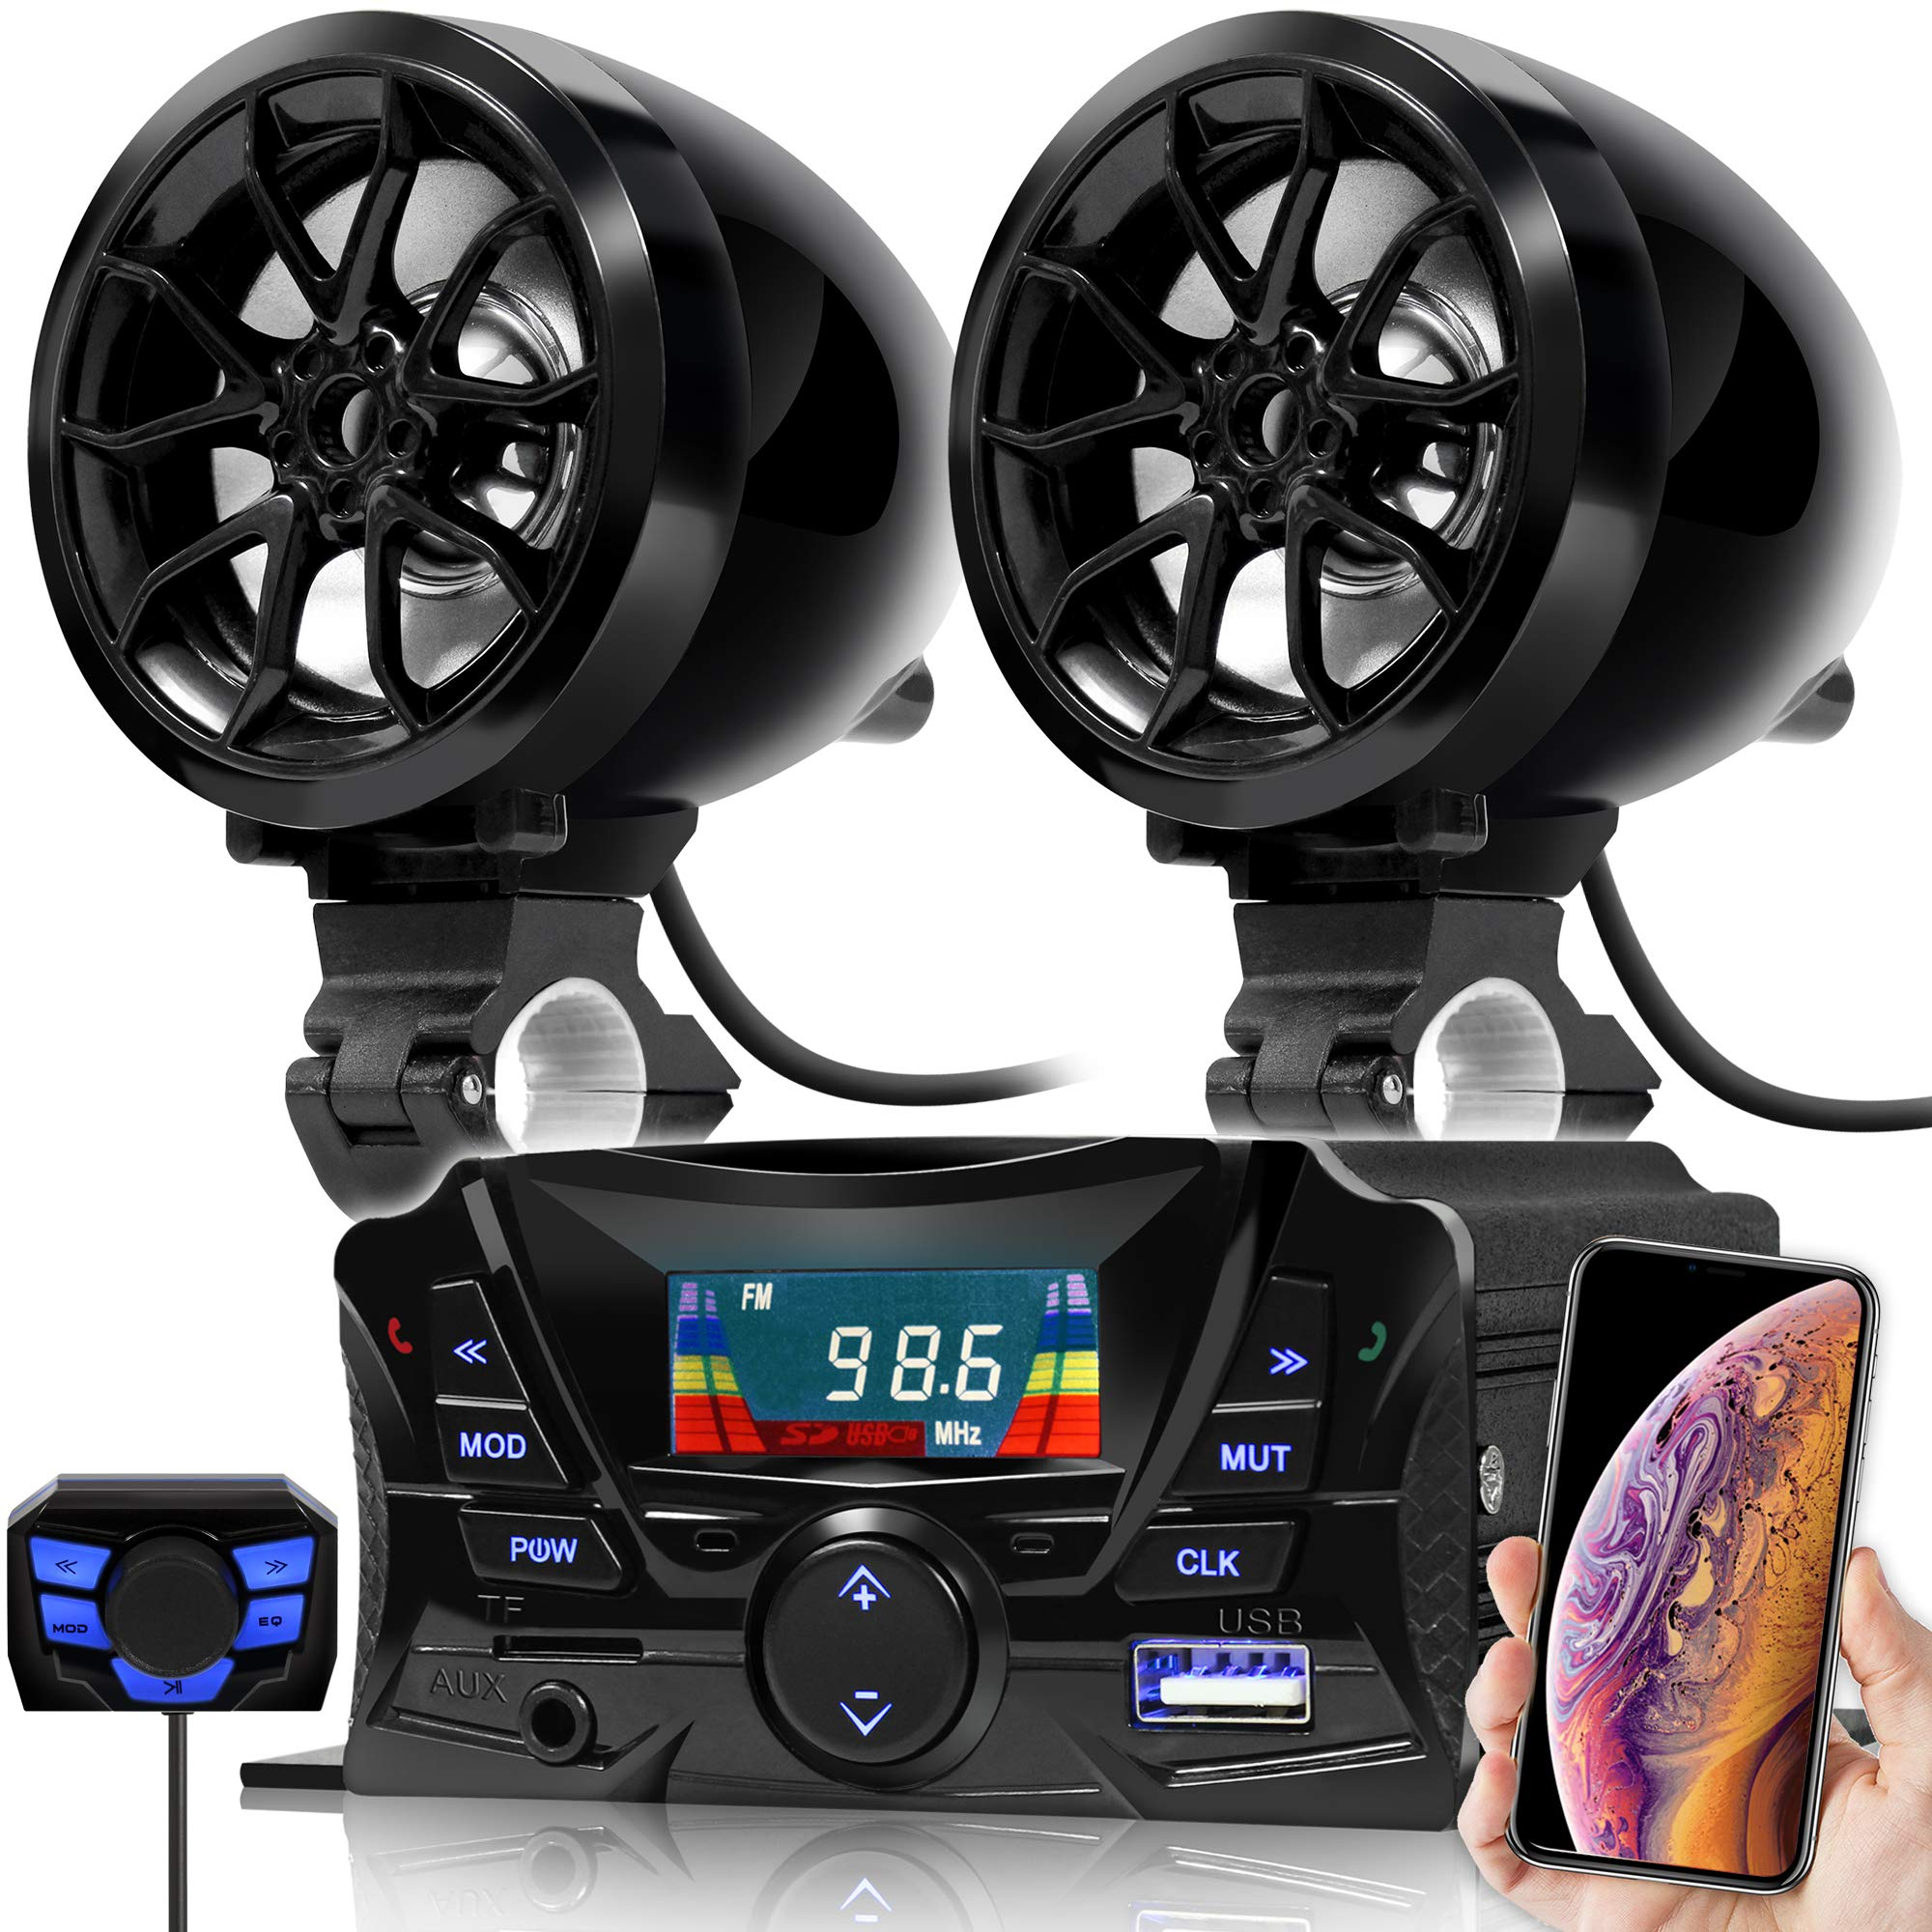 GoHawk TS3 Gen.2 Motorcycle 3'' Waterproof Bluetooth Speaker 7/8-1 in. Handlebar Mount MP3 Music Player Audio Stereo Amplifier System ATV UTV w/AUX in, USB, Micro SD, FM Radio (TS3 Black)